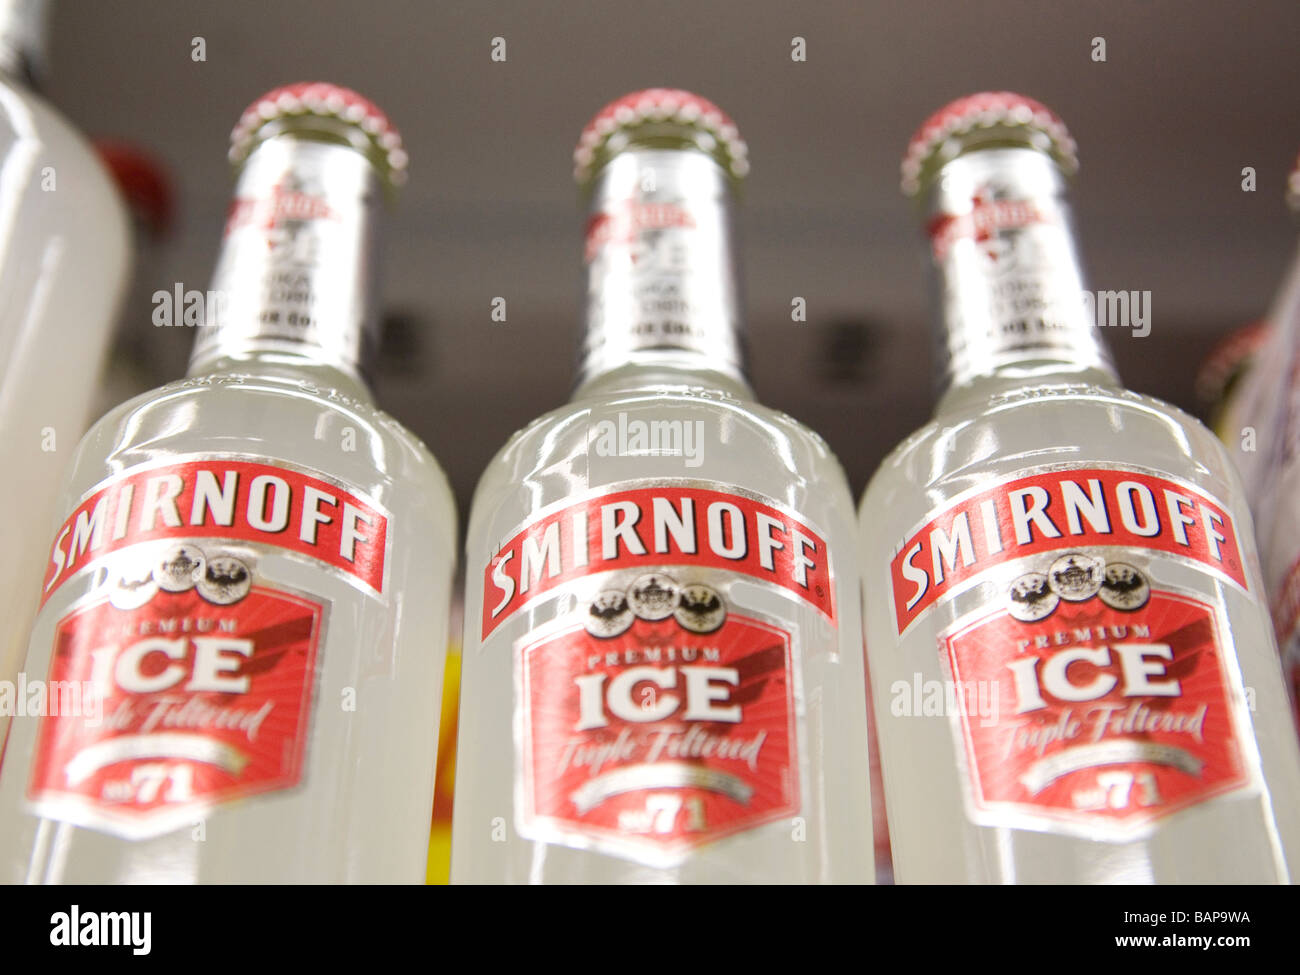 Bottles of Smirnoff Ice on the shelf in an off license - Stock Image